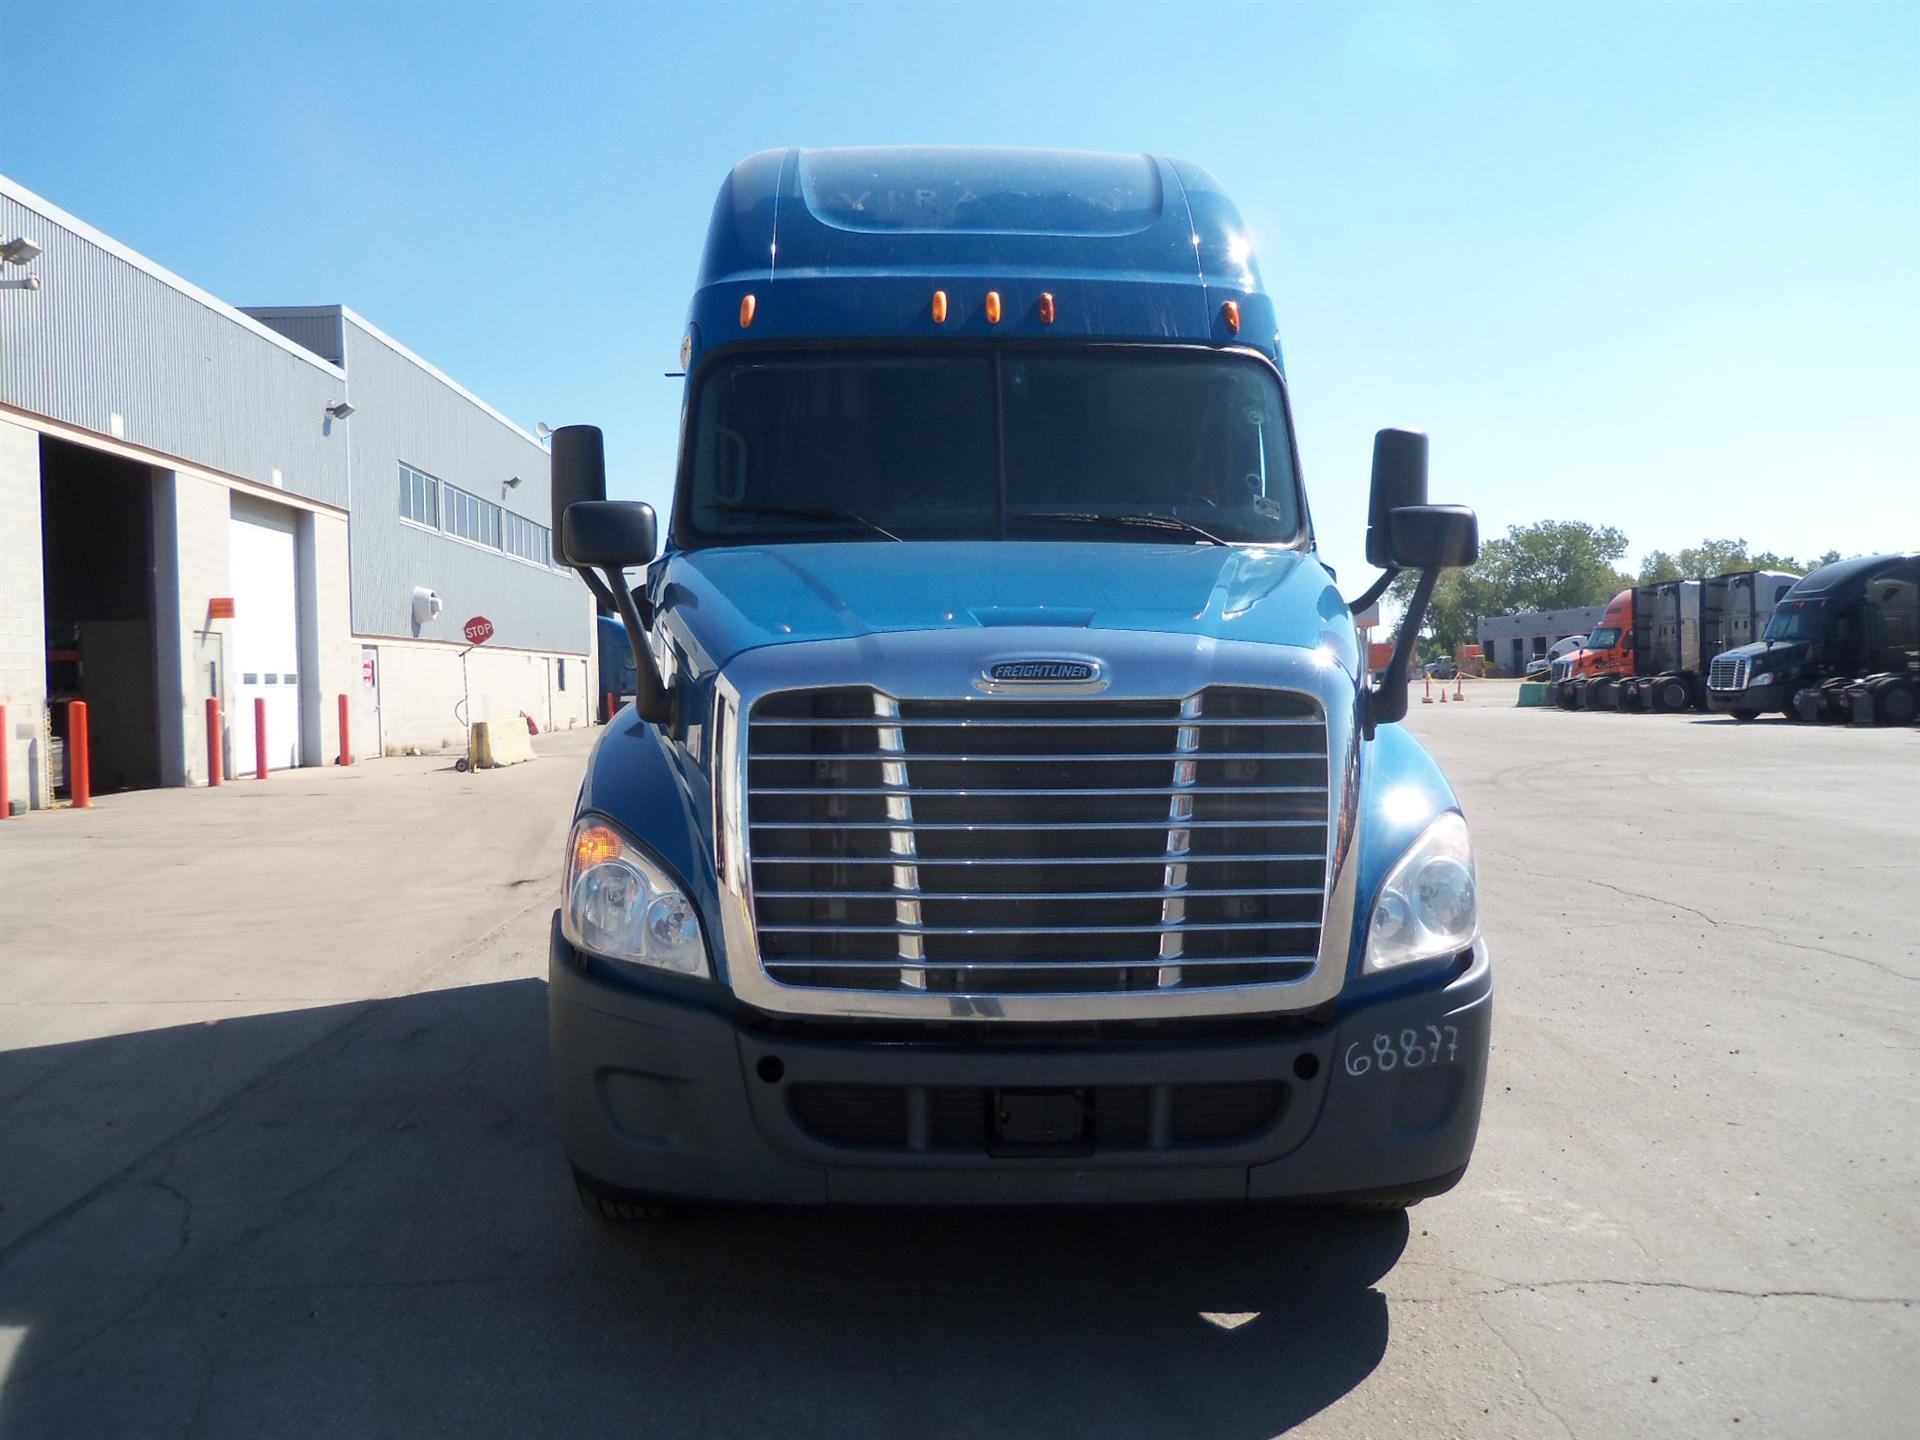 USED 2014 FREIGHTLINER CASCADIA SLEEPER FOR SALE FOR SALE IN